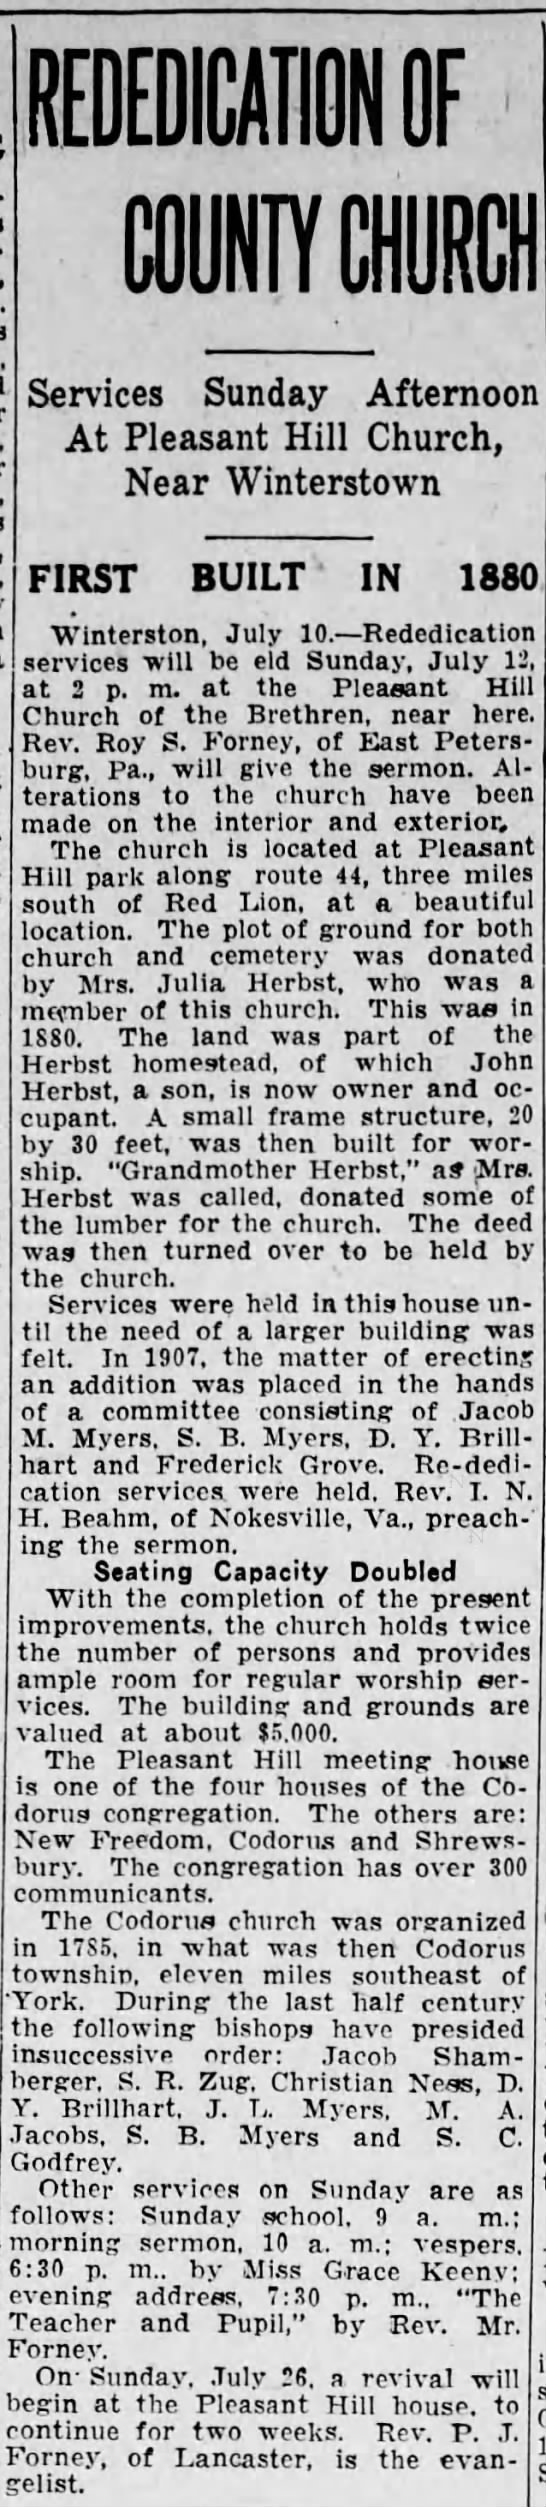 Pleasant Hill Church of the Brethren rededicated 1936 - E DICATION OF COUNTY CHURCH Services Sunday...